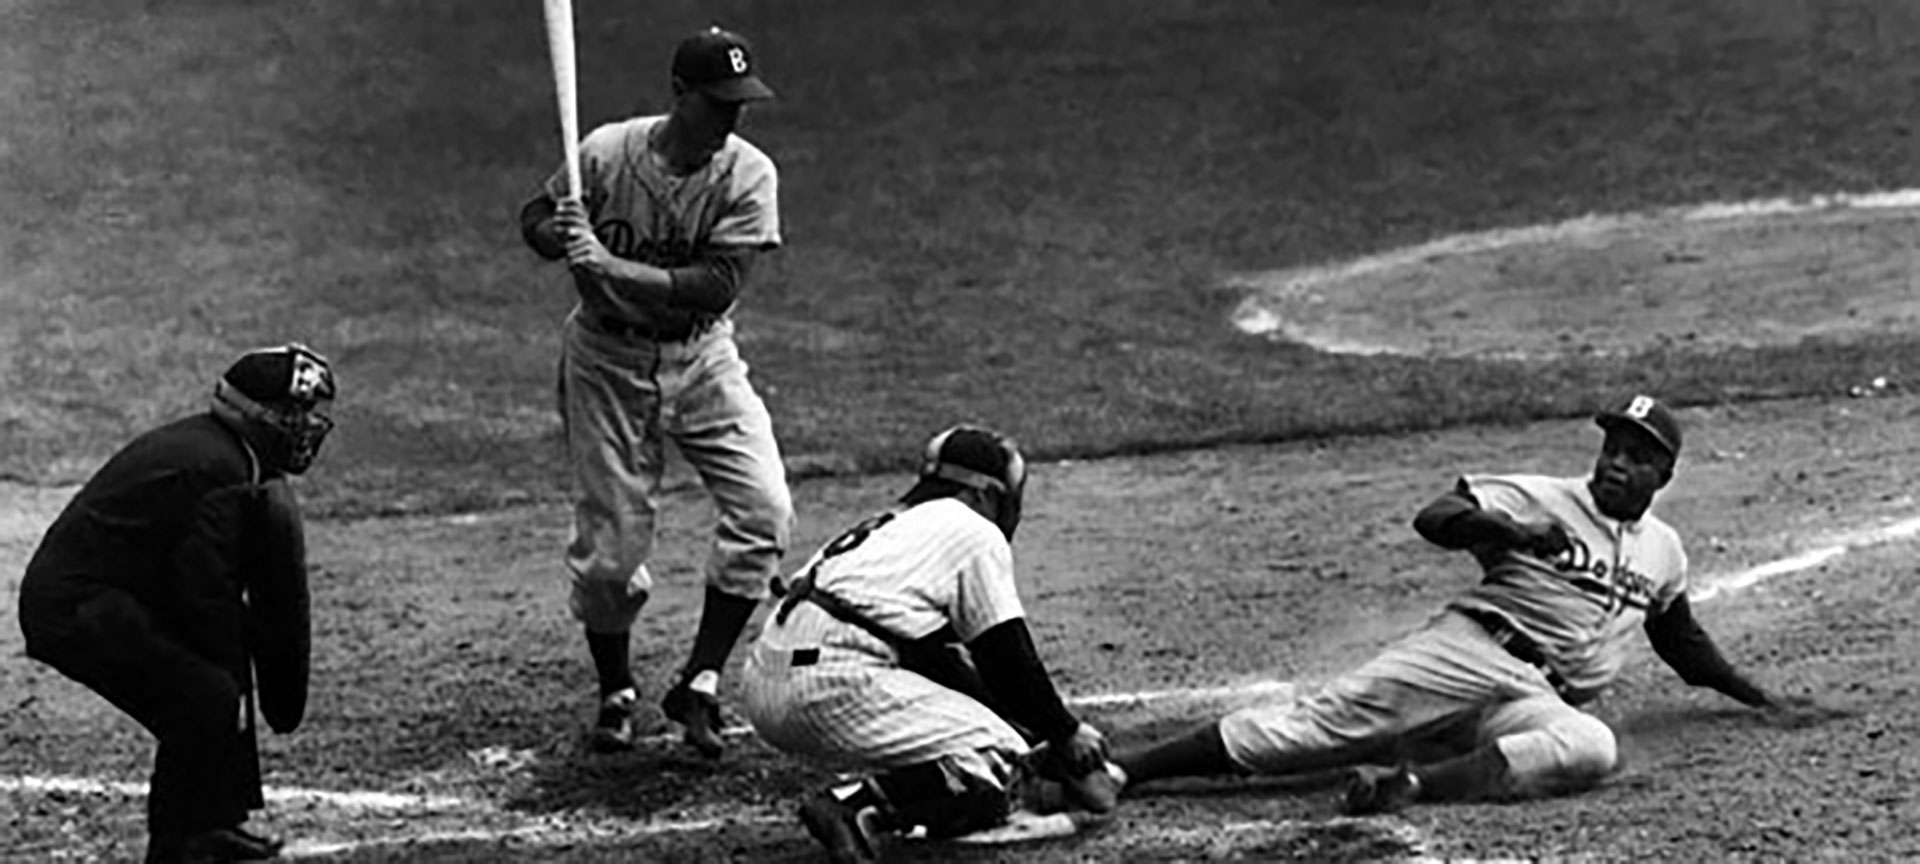 A Brooklyn Dodgers player sliding into home